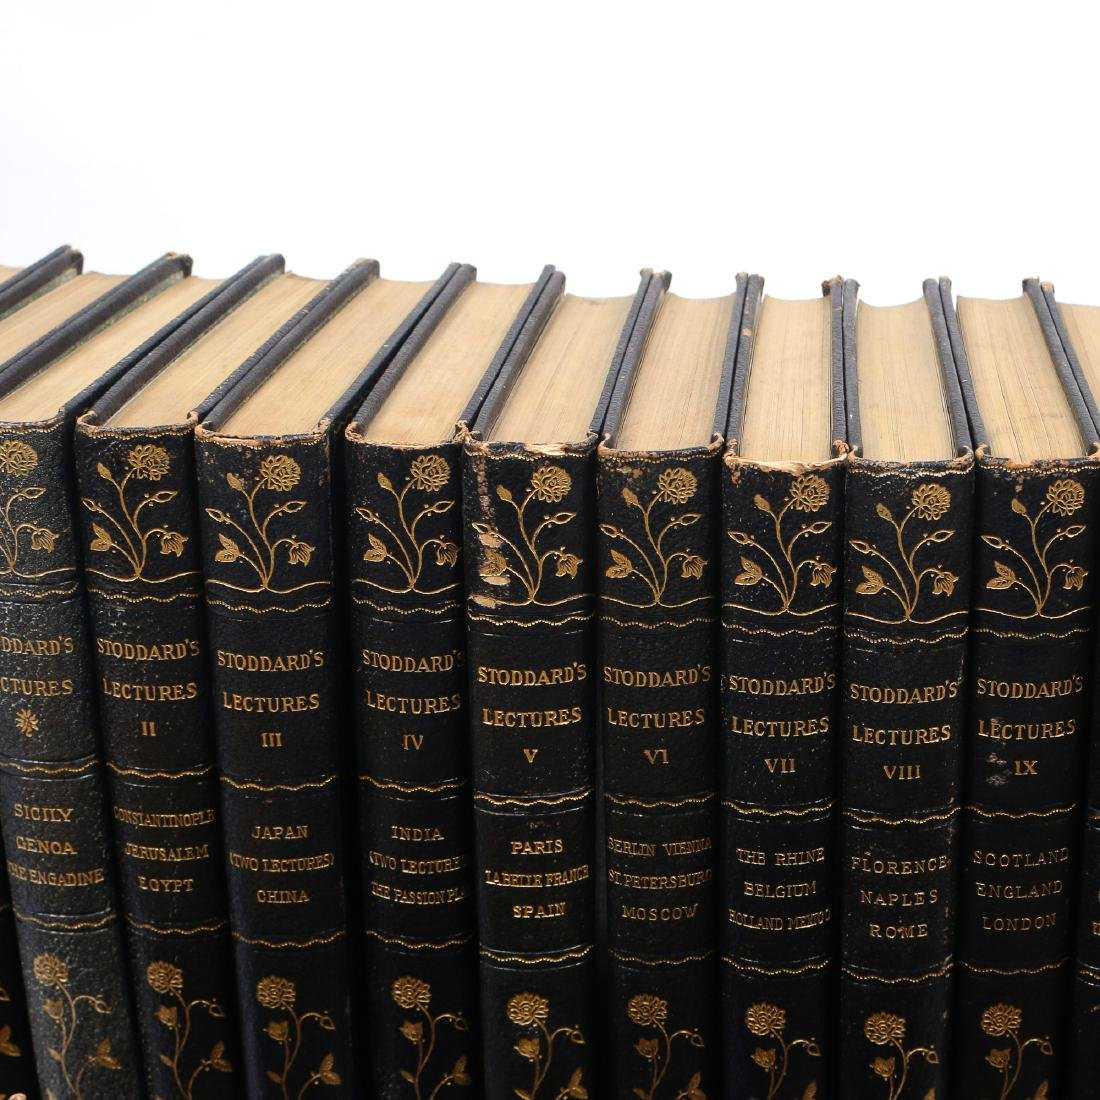 (53vol) [BINDINGS] MISC. LEATHER-BOUND BOOKS - 8